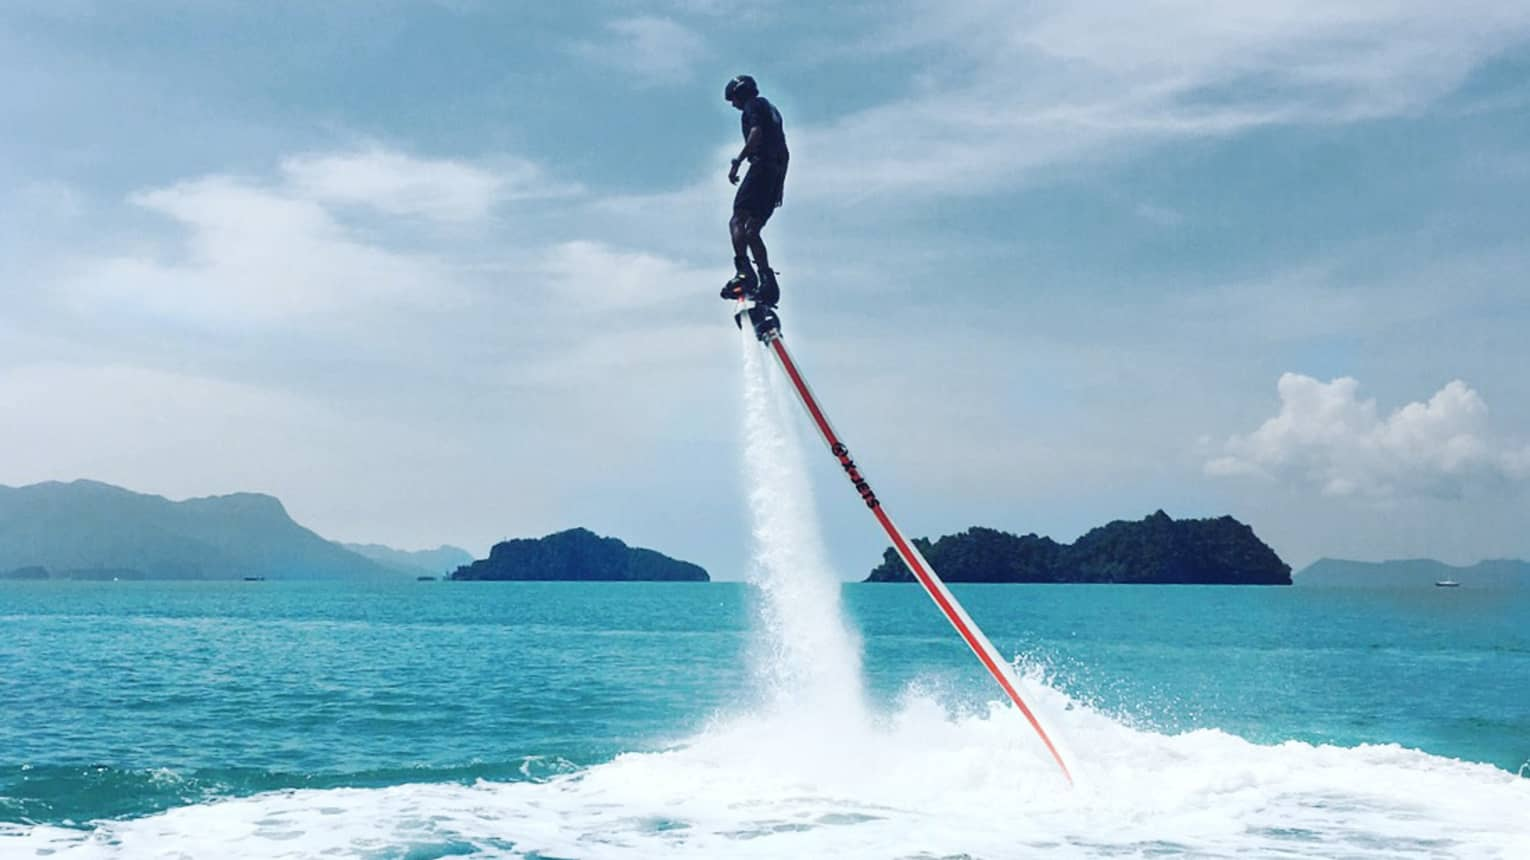 Water sprays as man soars above ocean attached to line, jet blade pack